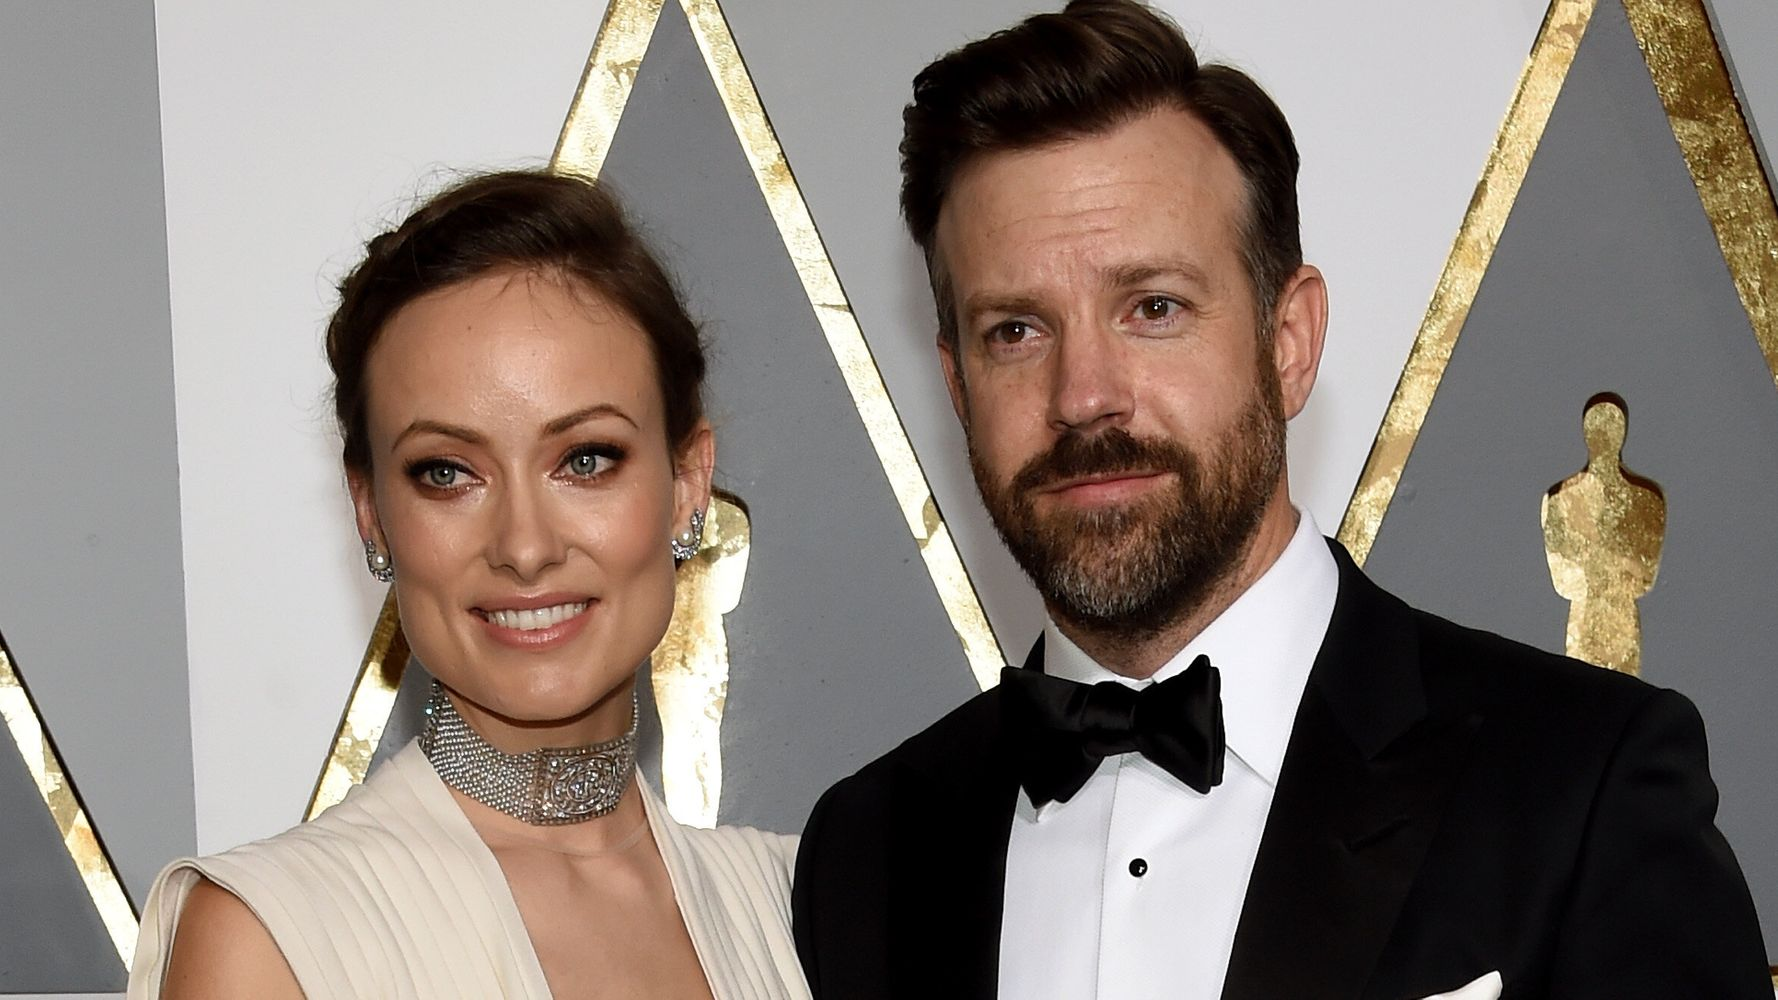 Olivia Wilde And Jason Sudeikis End Engagement, Split After 9 Years Together